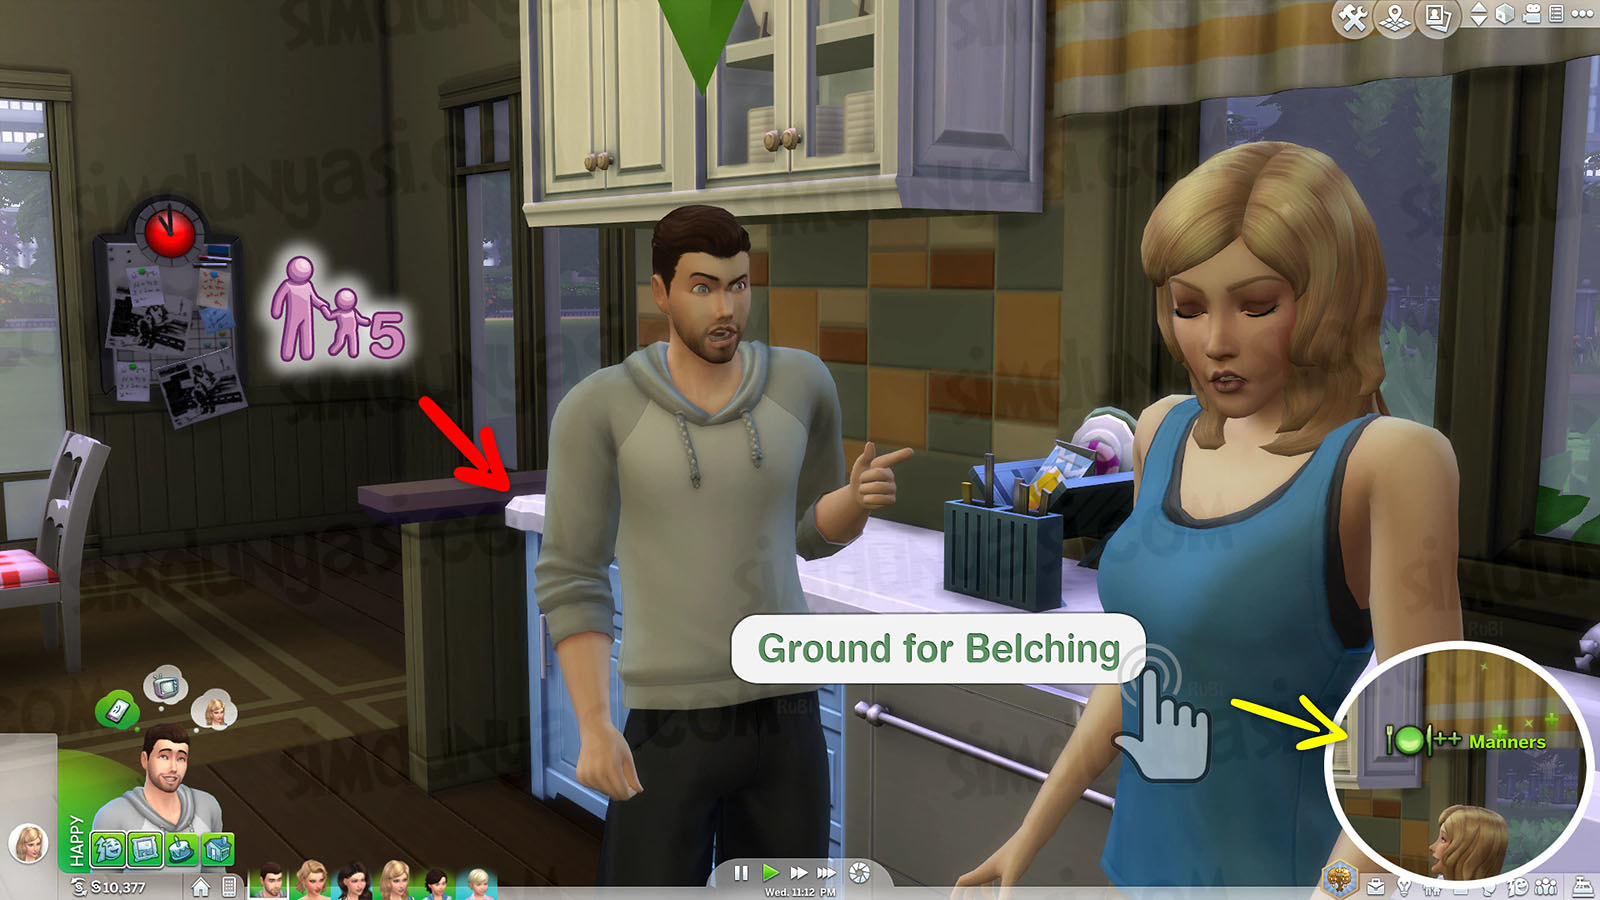 The Sims 4 Parenthood Ebeveynlik Paketi Ground Cezalandırma